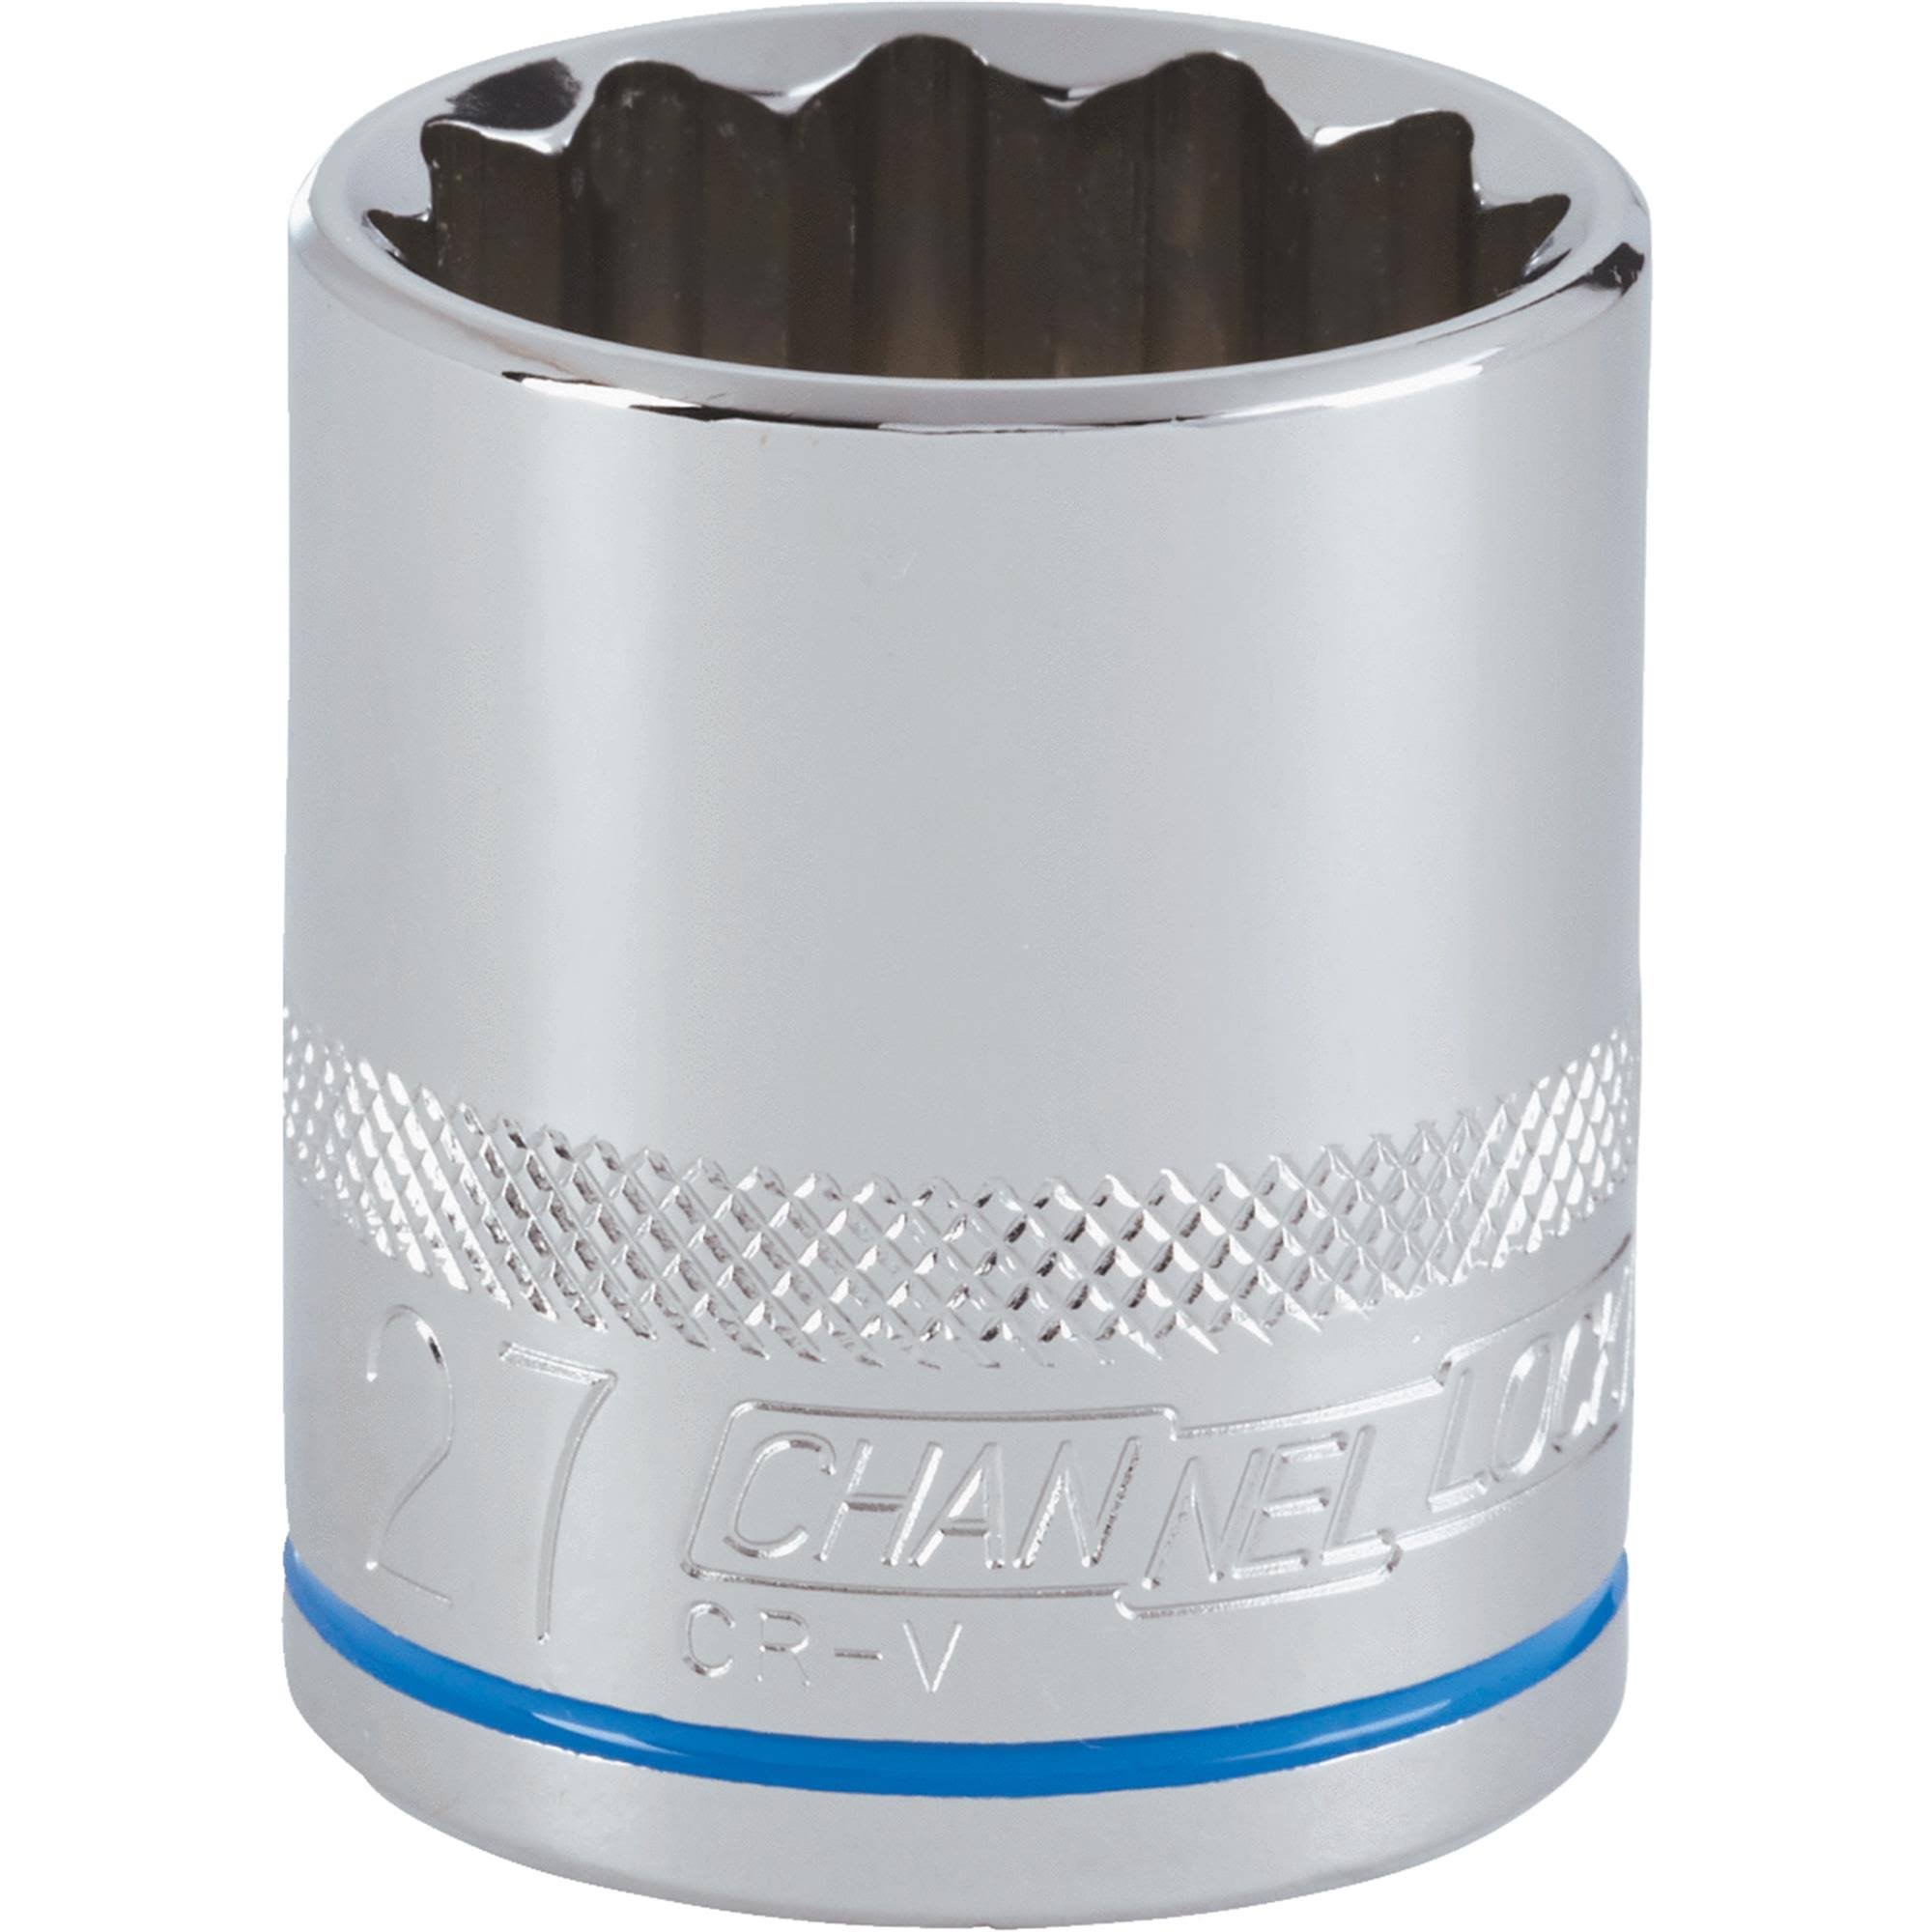 Channellock Products Drive Socket - 27mm, 1/2""